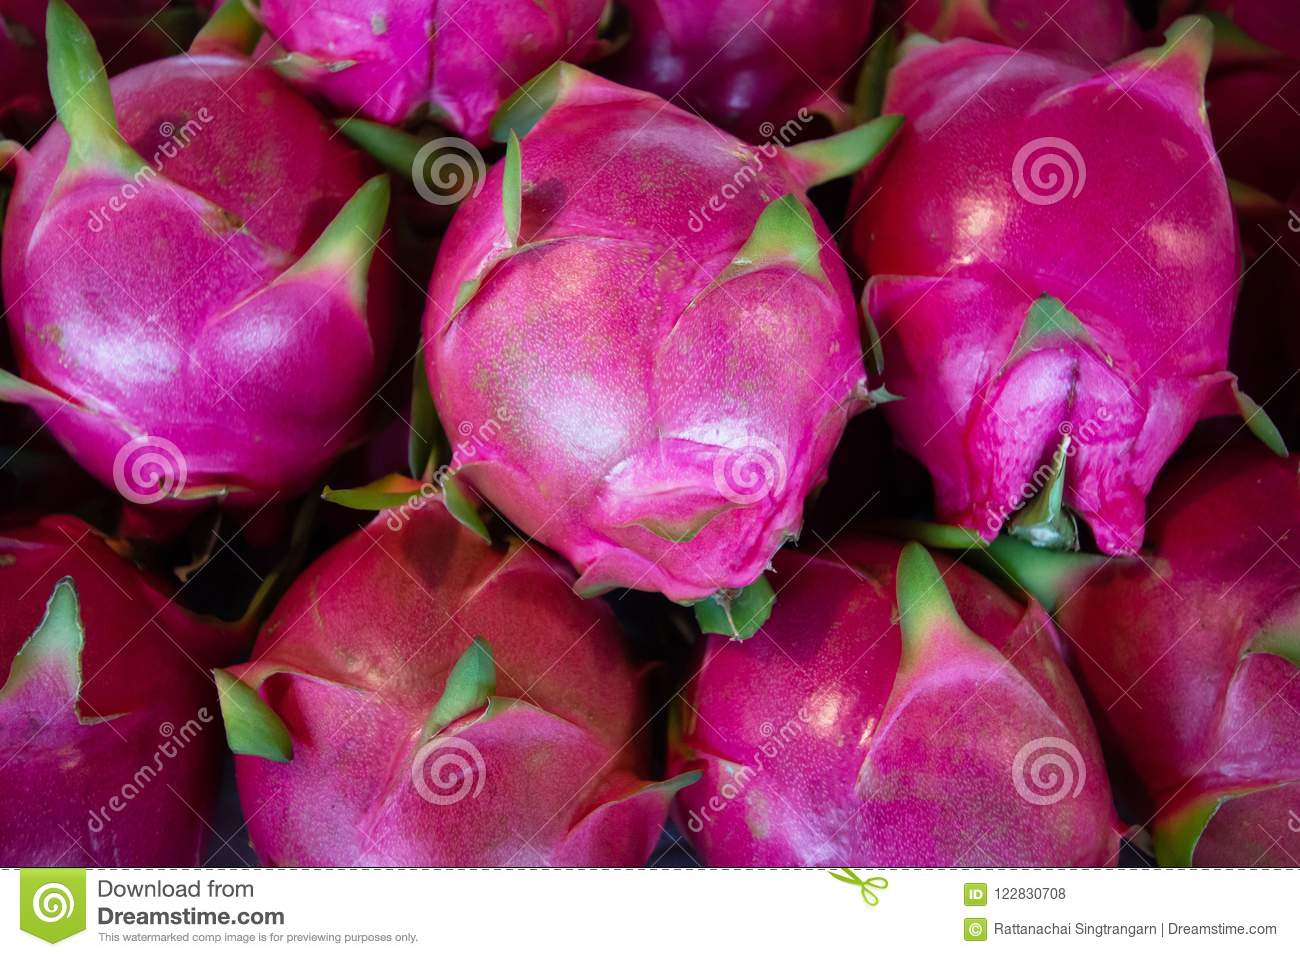 Heap Of Organic Red Dragonfruit Type Of Tropical Fresh Fruits Stock